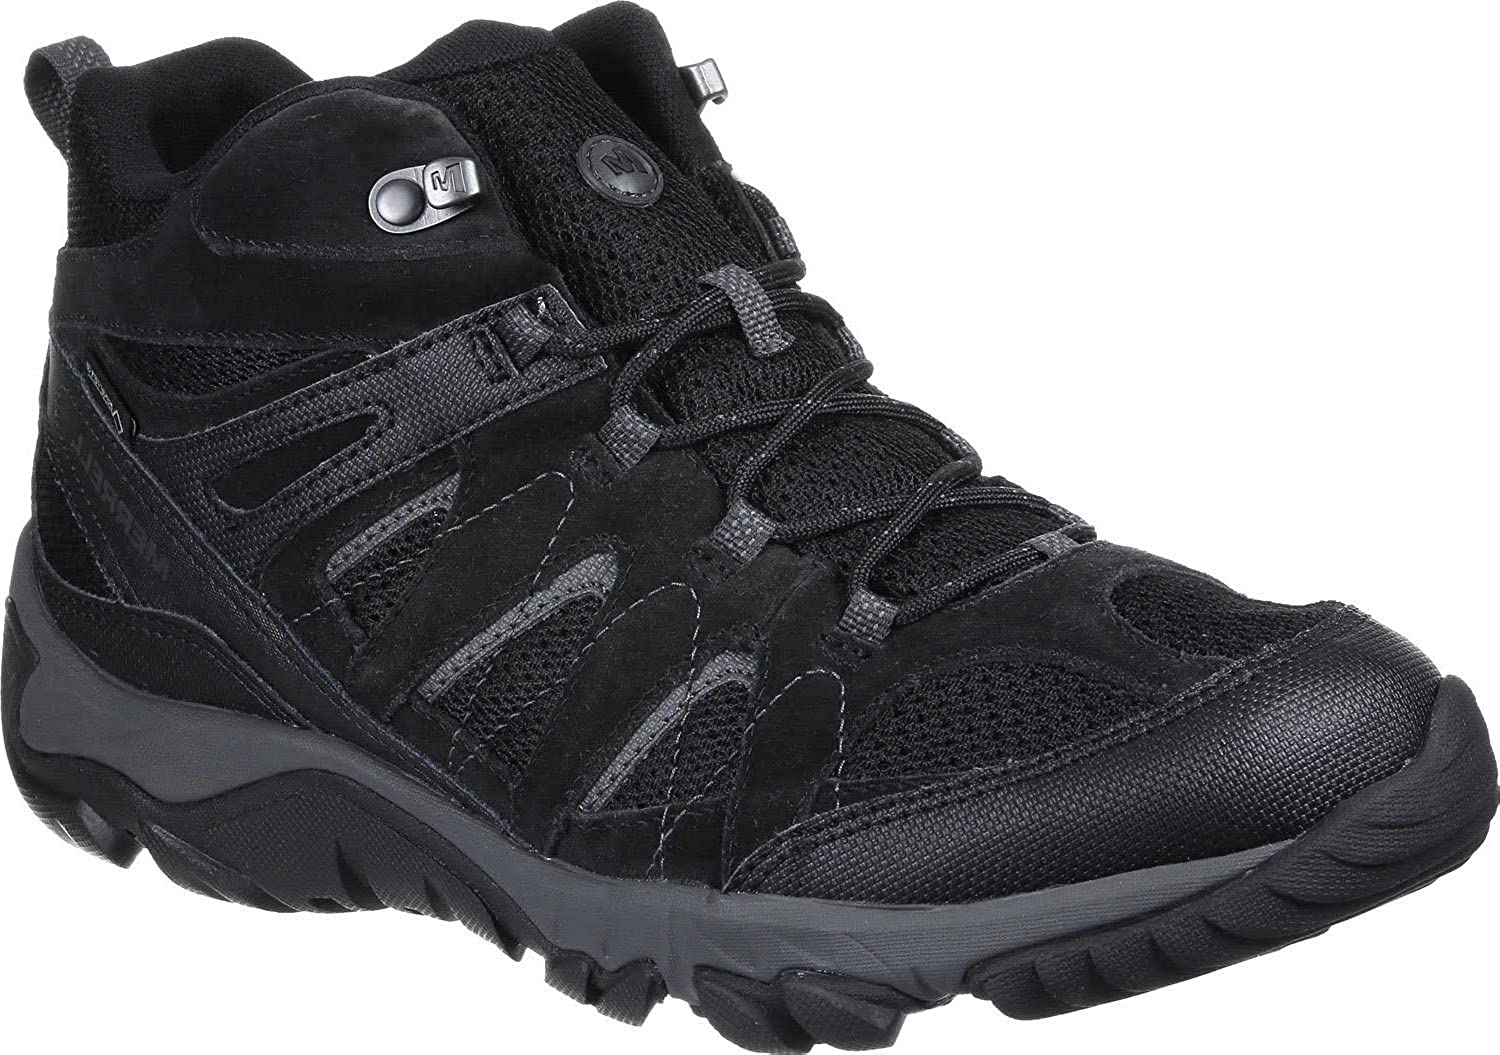 Merrell Men's Outmost MID Vent GTX